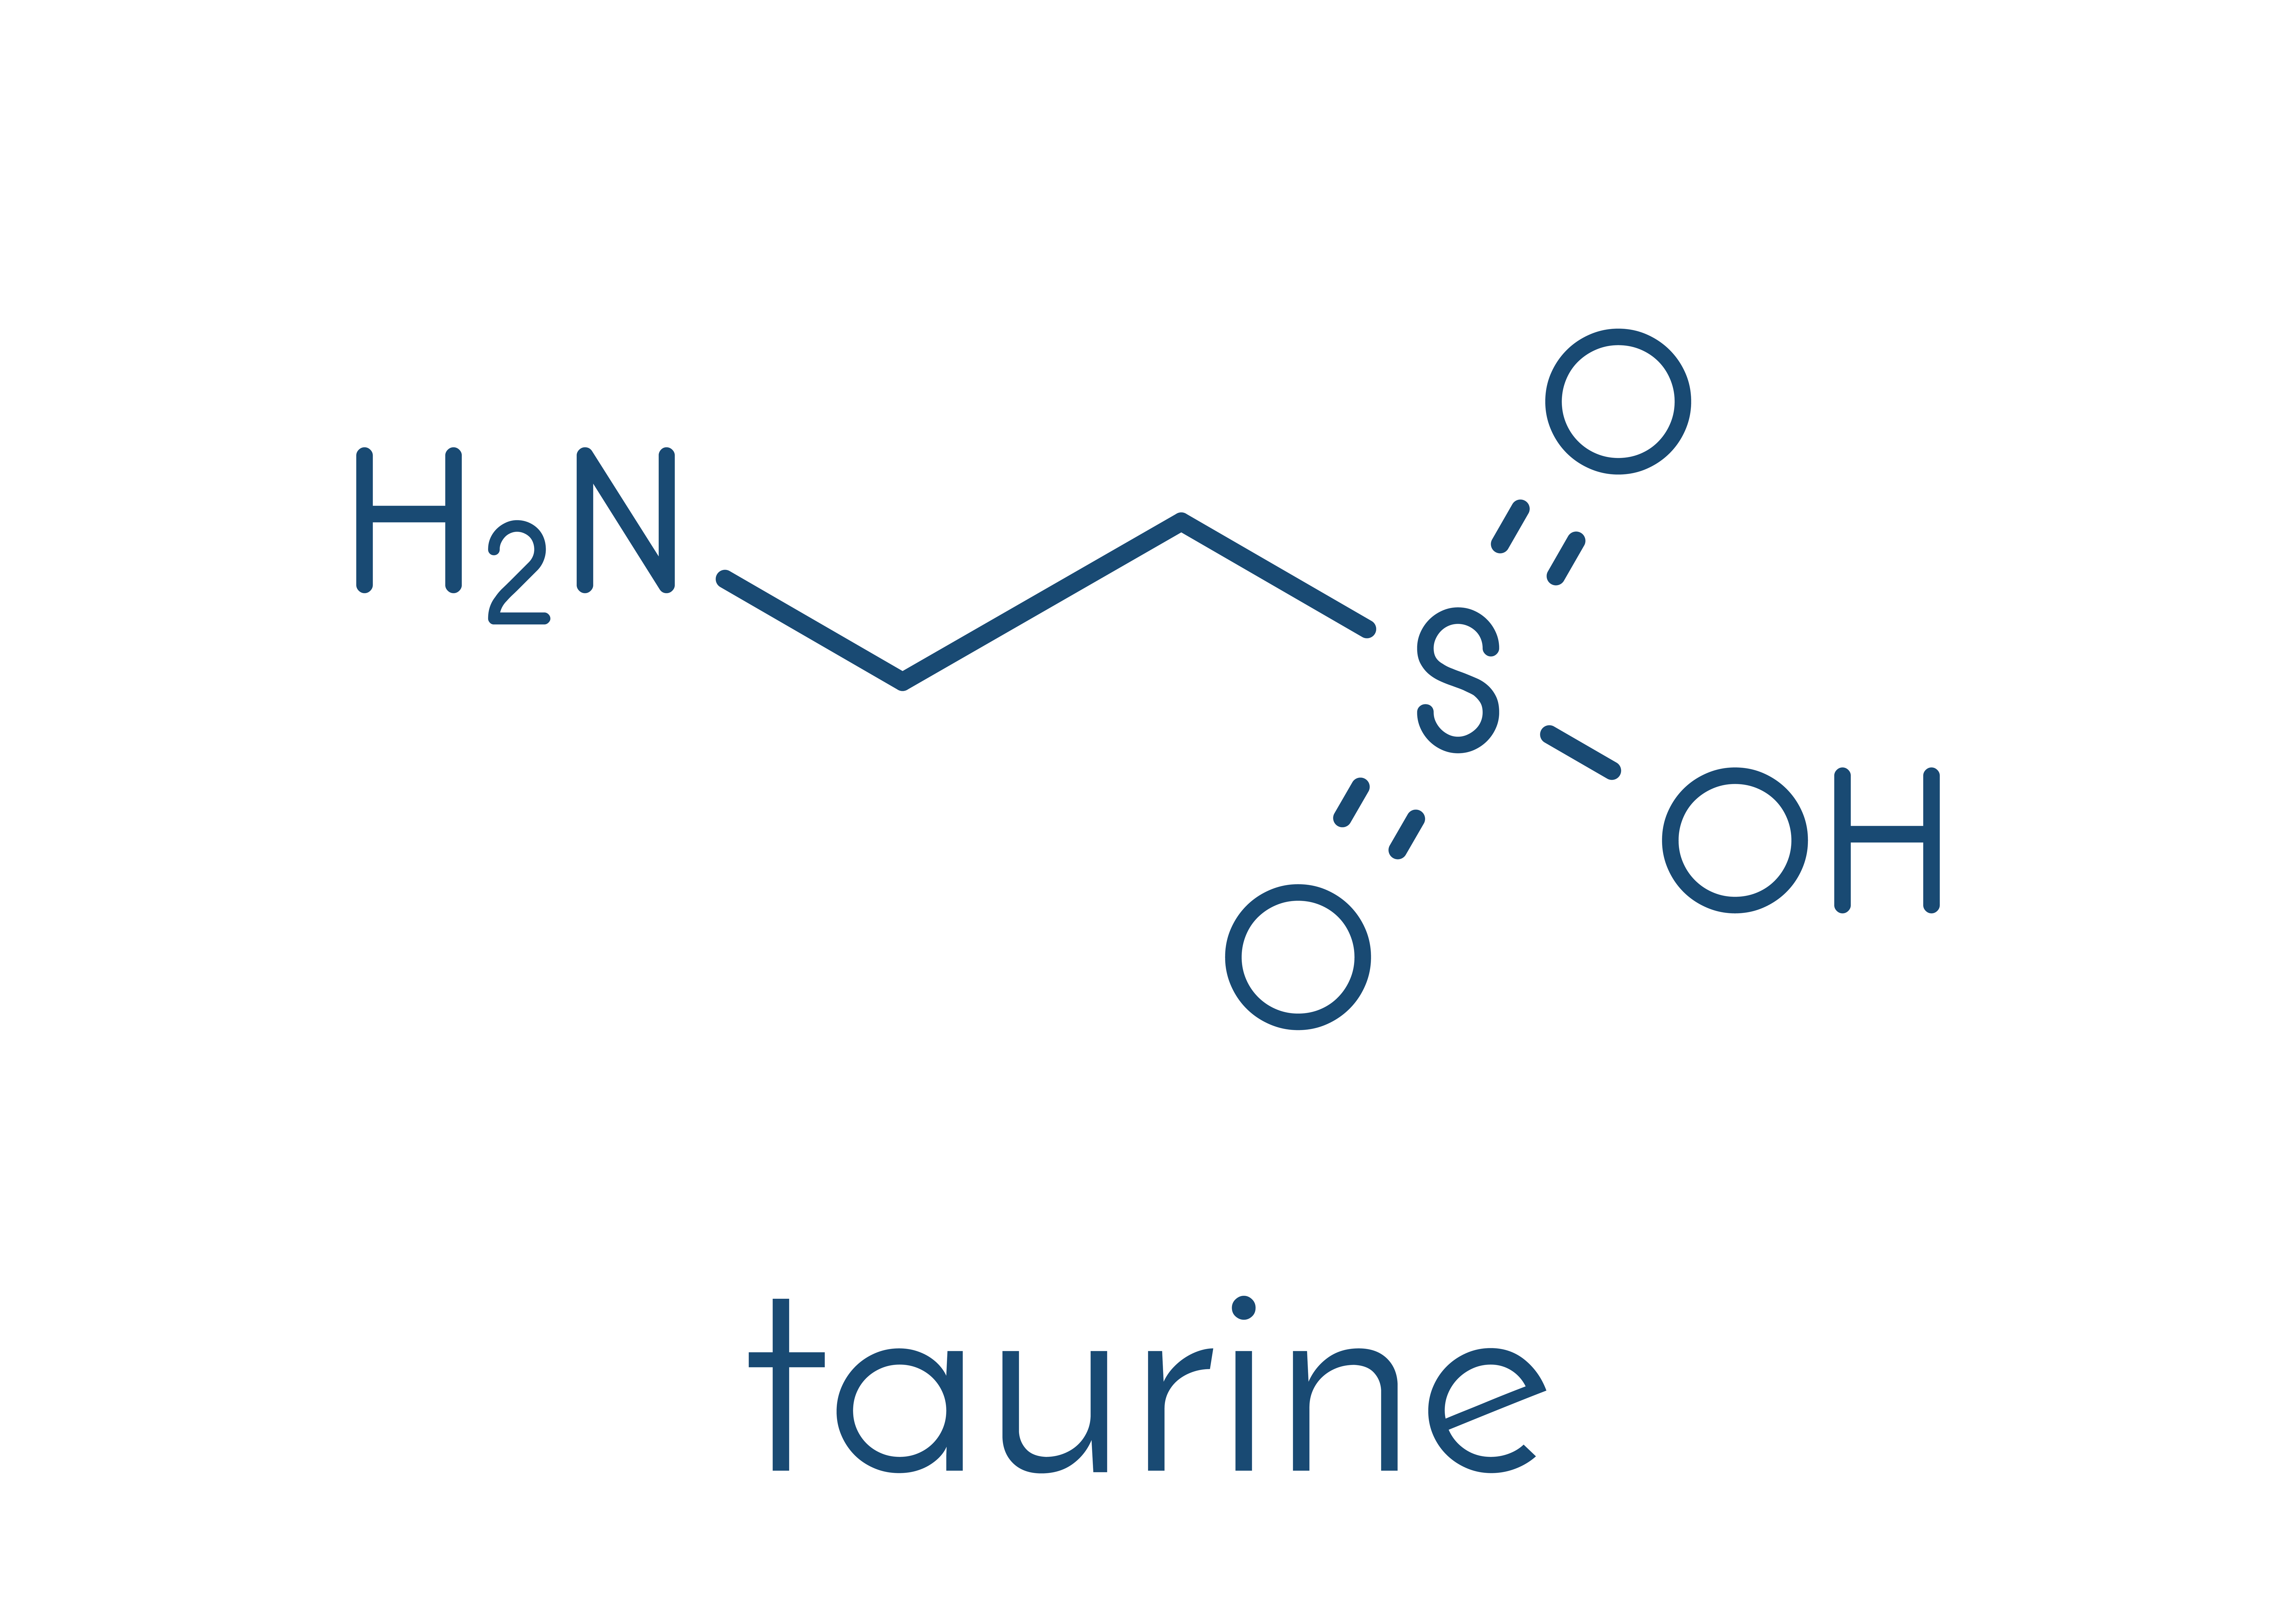 Taurine has a lot of synergistic actions with other stimuli substances